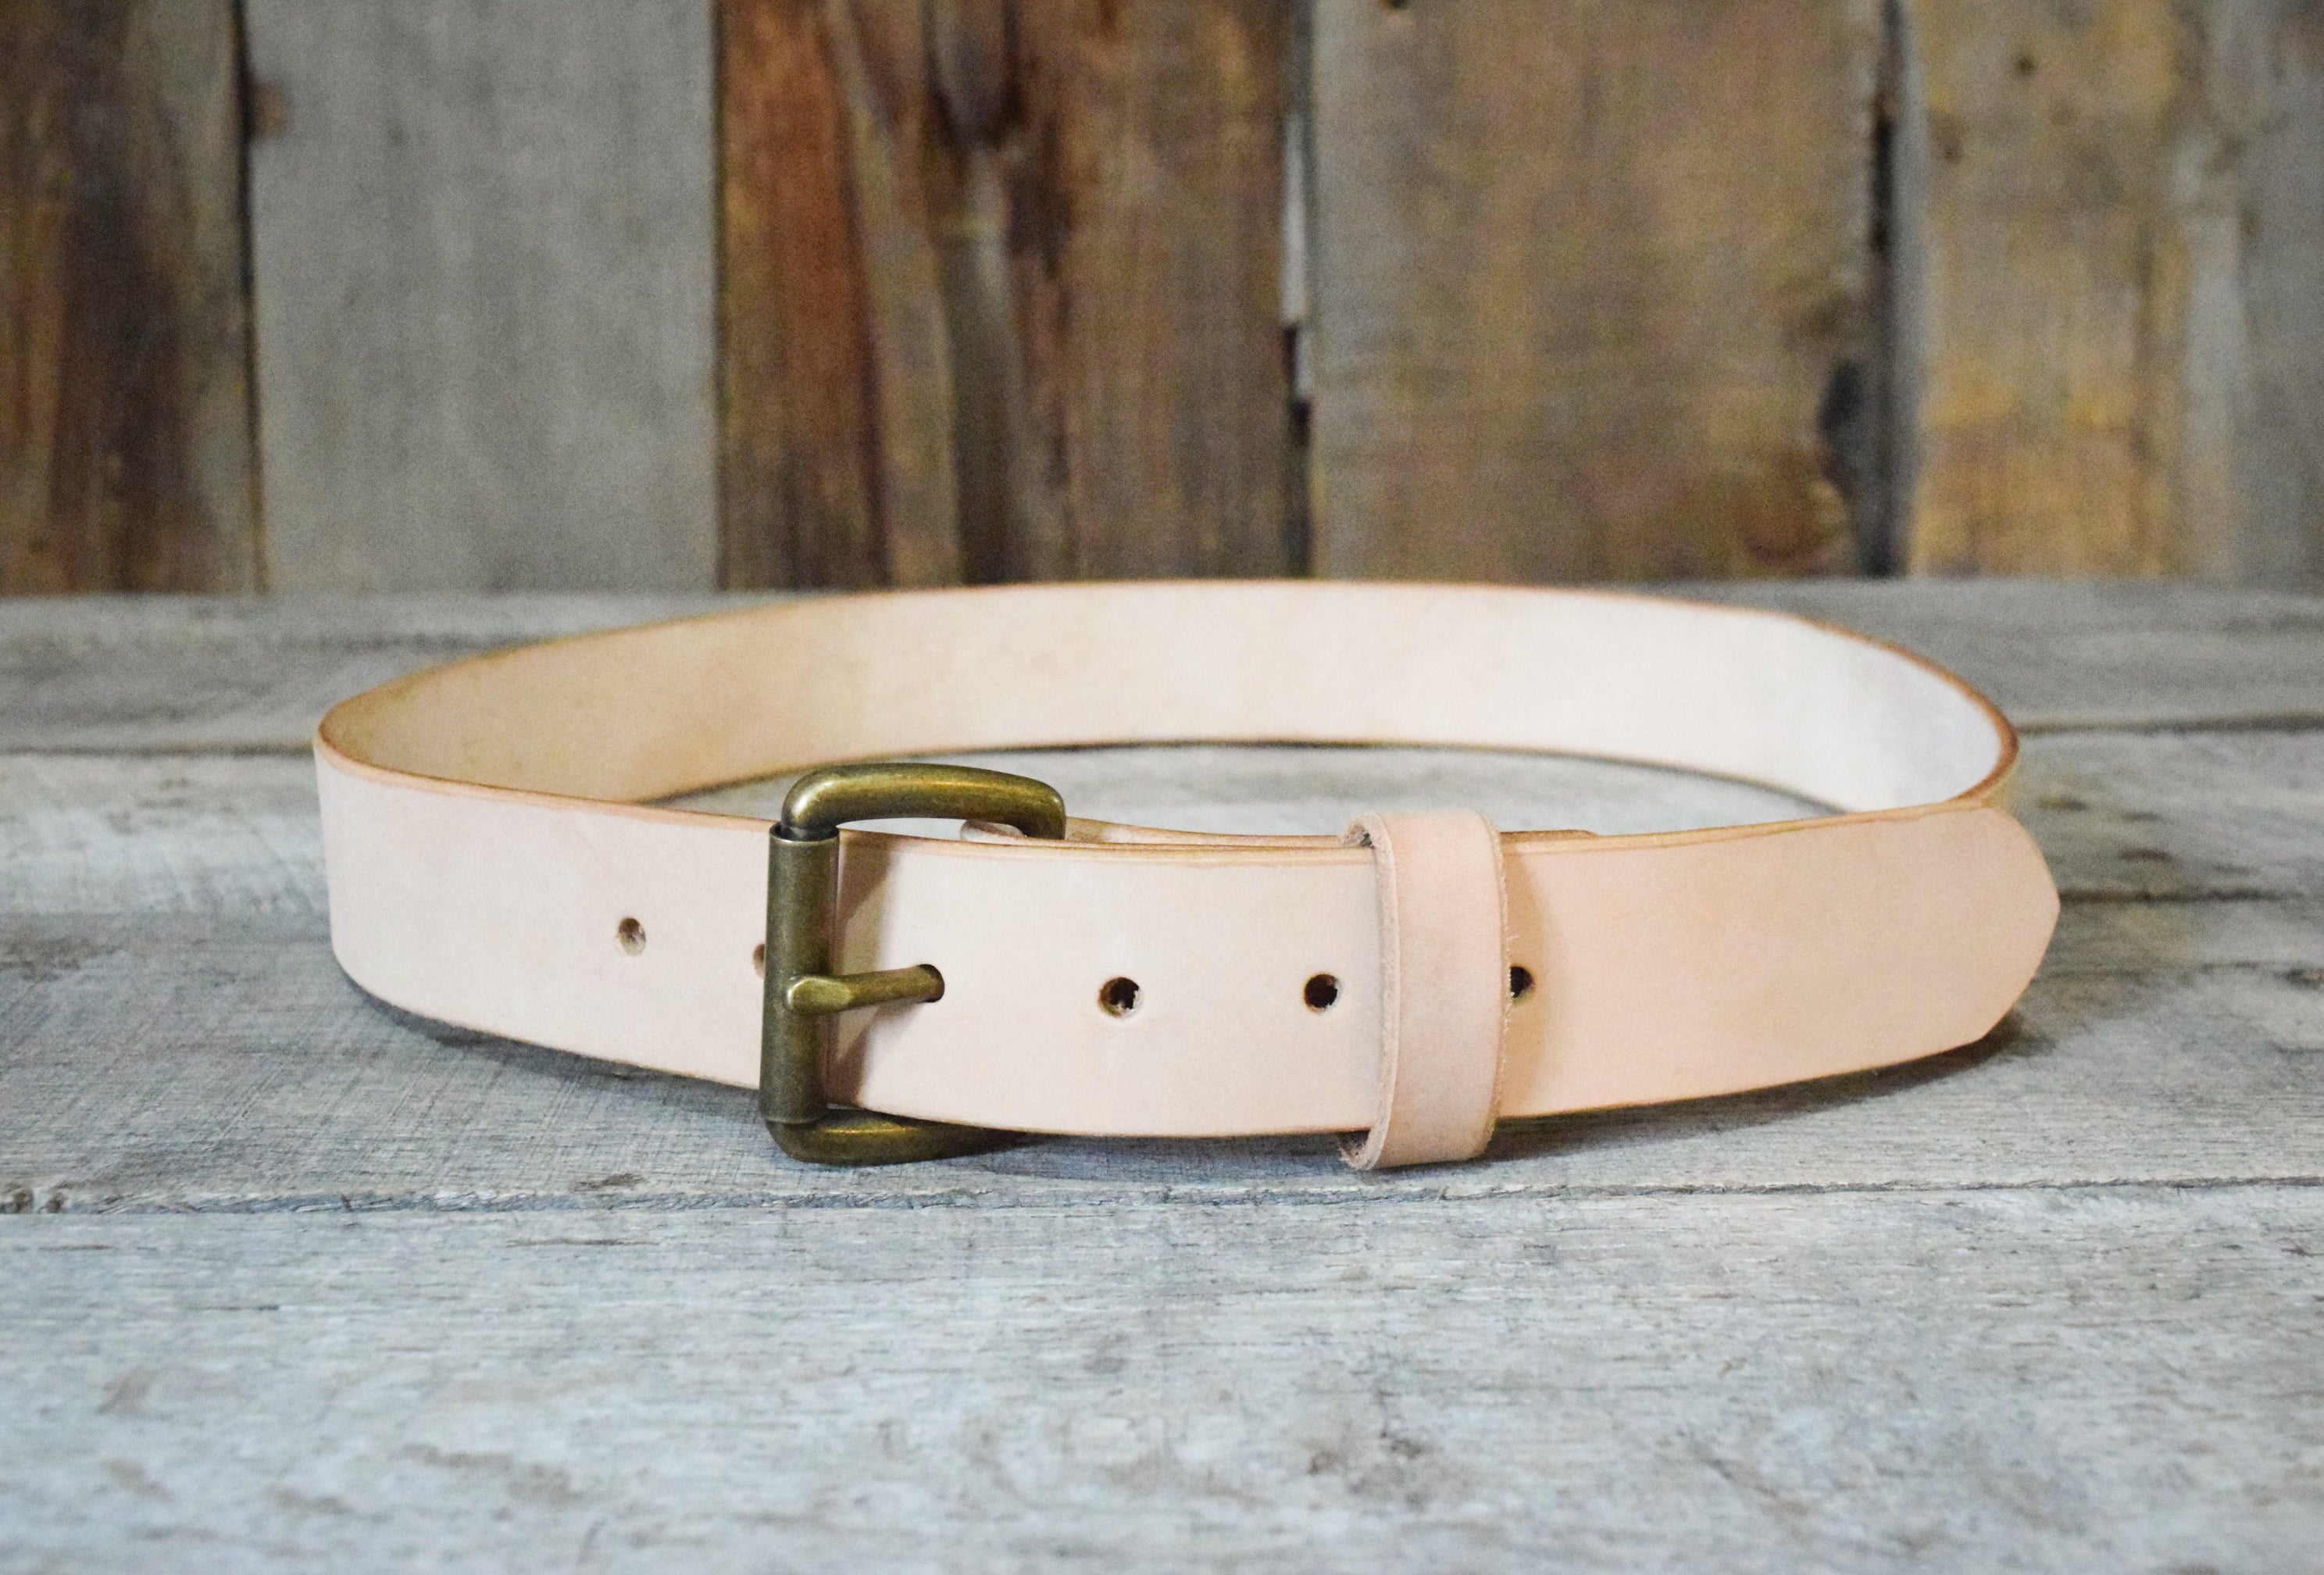 Natural Veg Tan & Antique Brass Roller Buckle